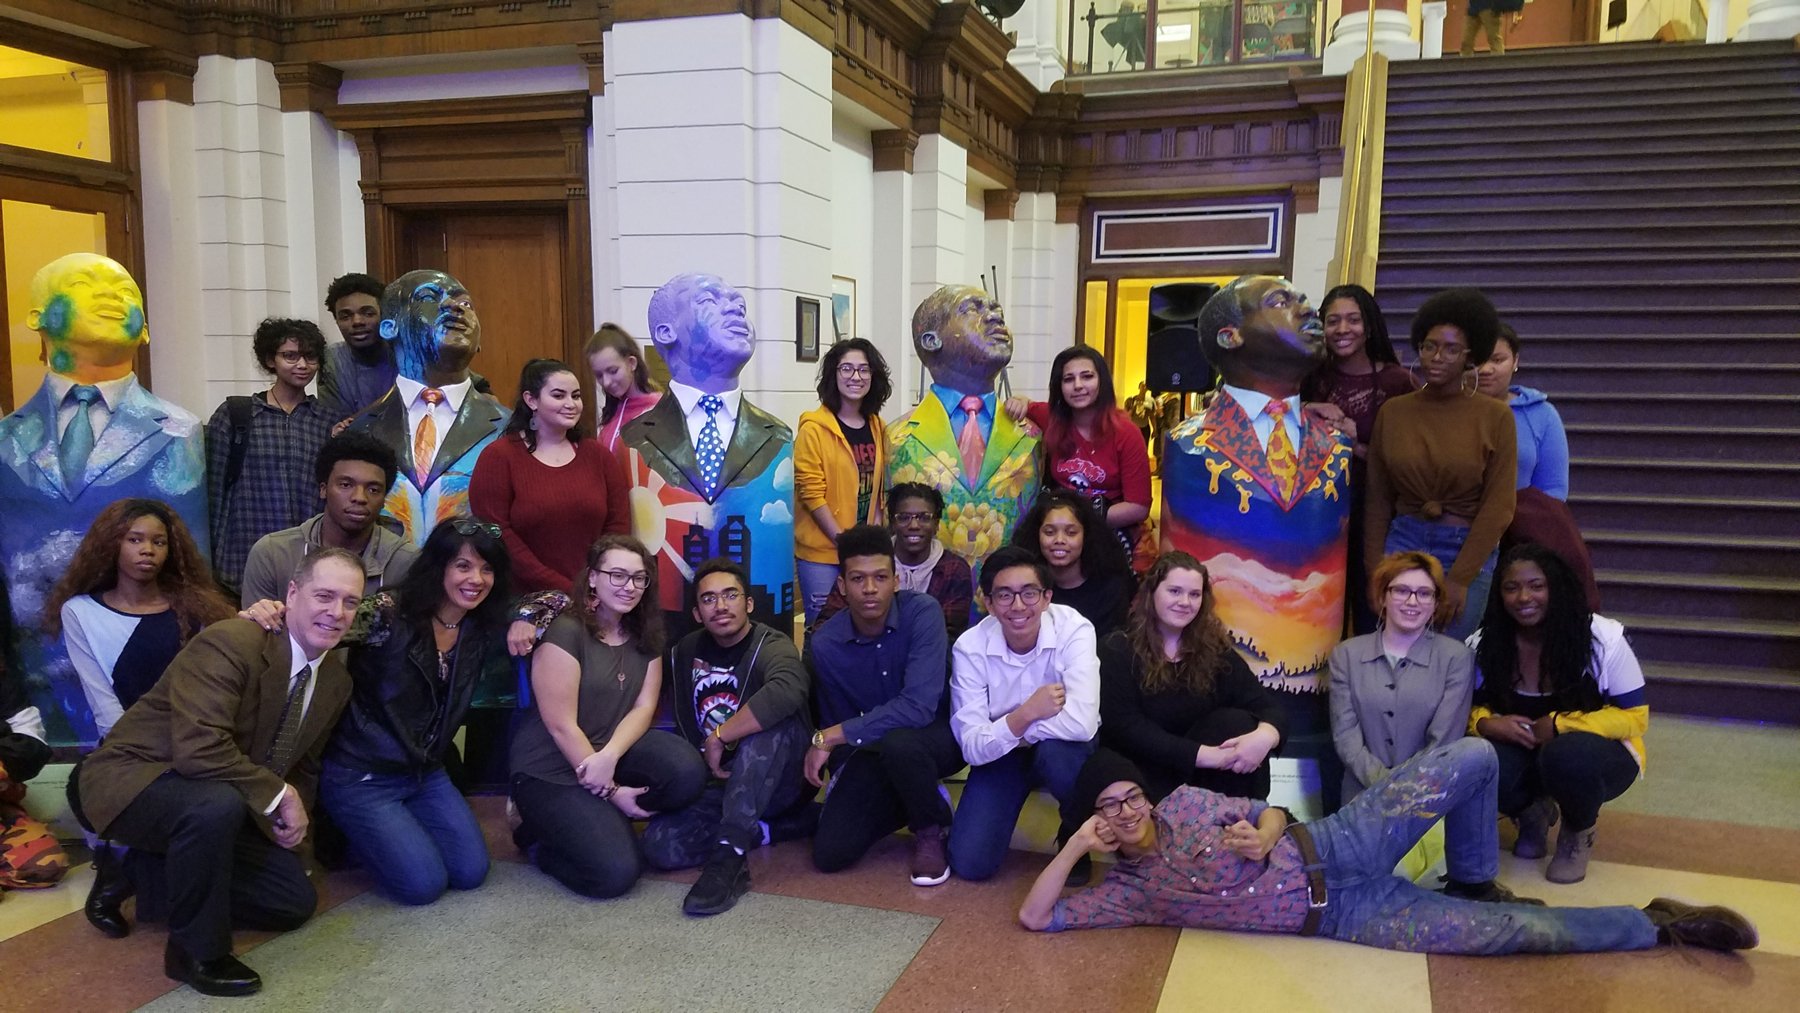 The statues were hand painted by students at the Philadelphia High School for the Creative and Perfoming Arts.